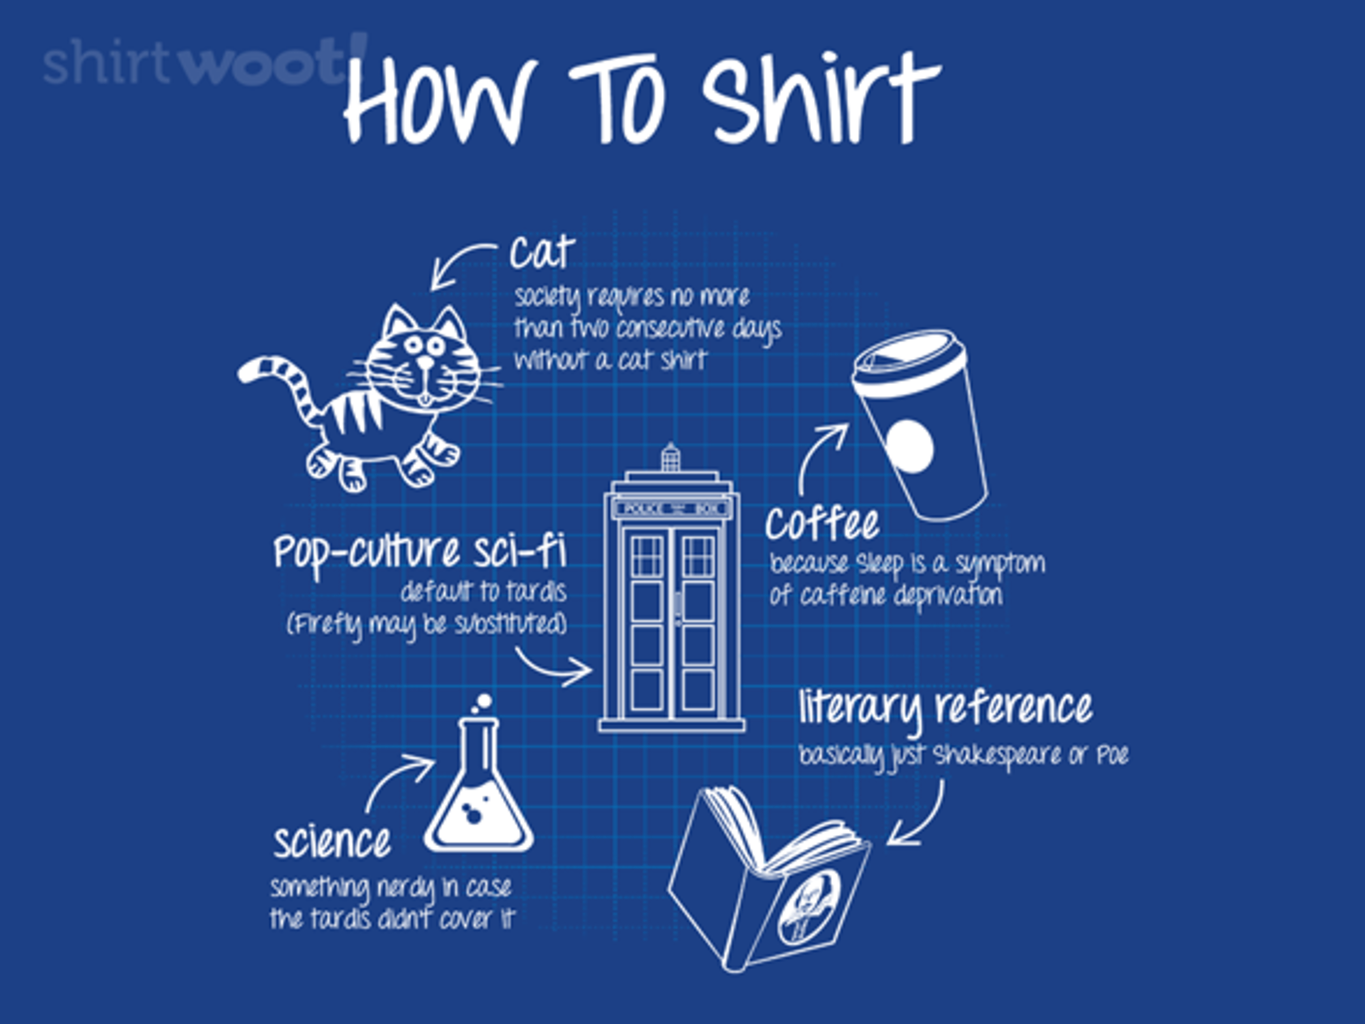 Woot!: How To Shirt